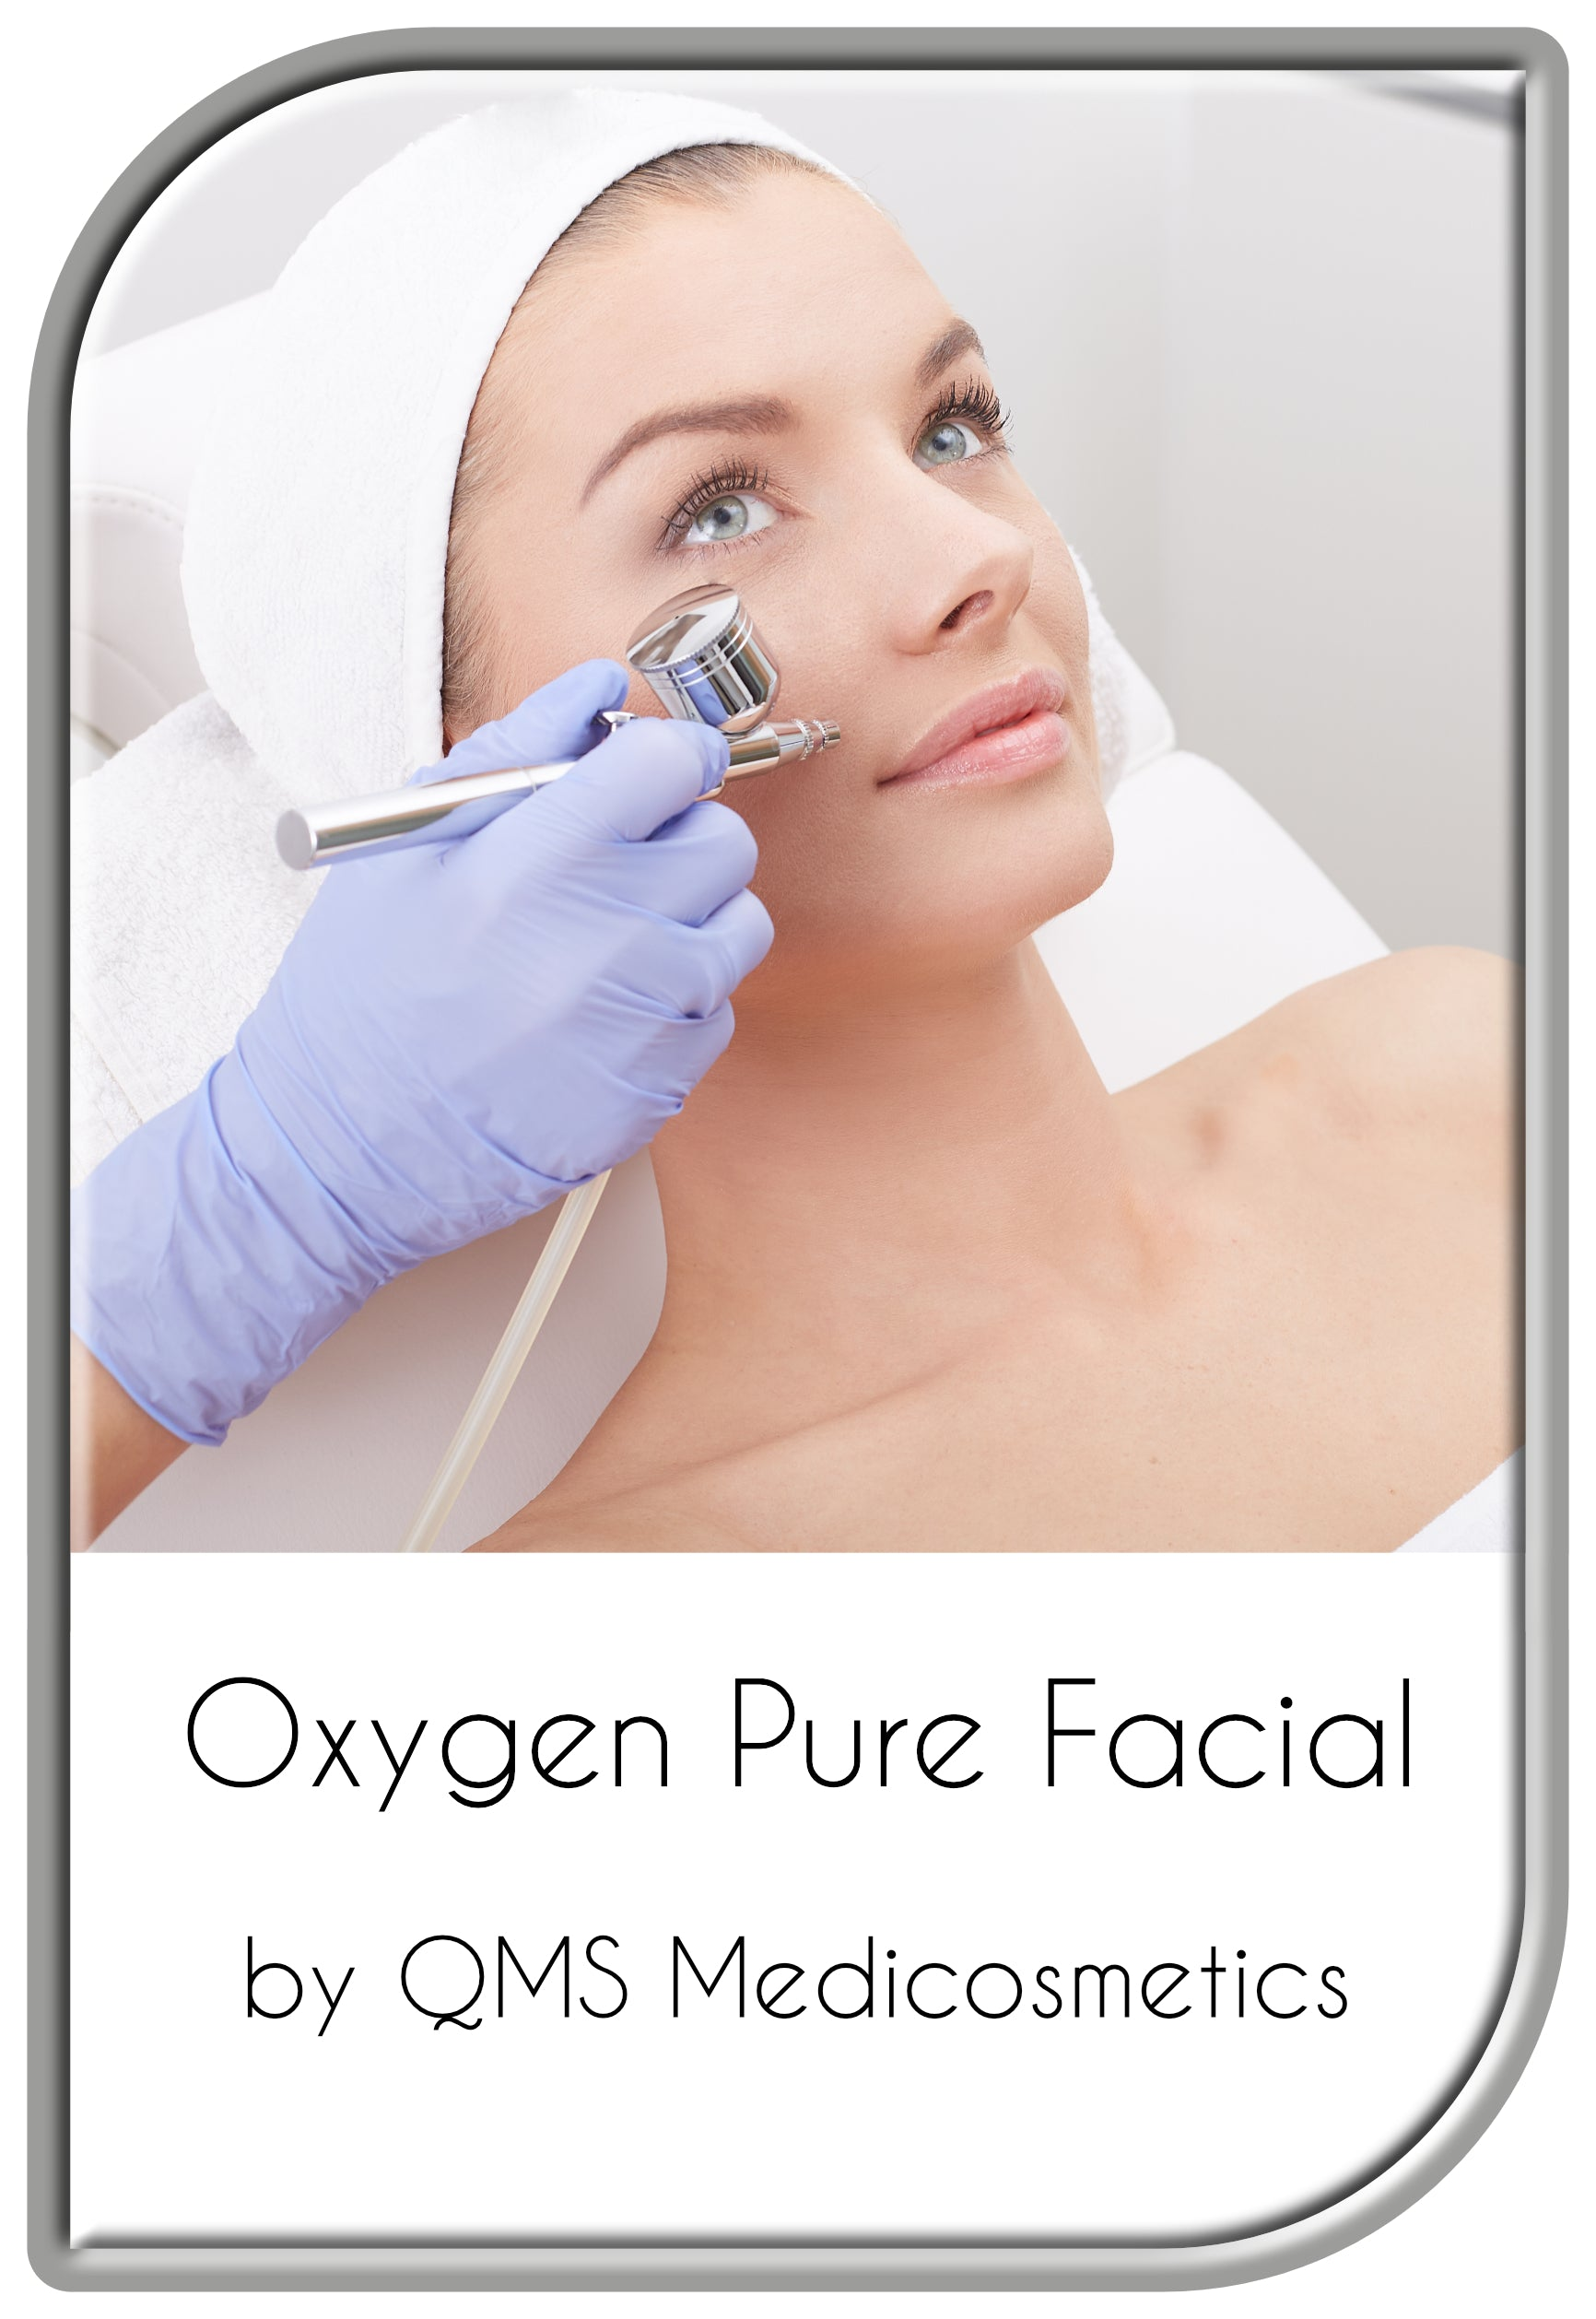 Oxygen Pure Facial Treatment by QMS